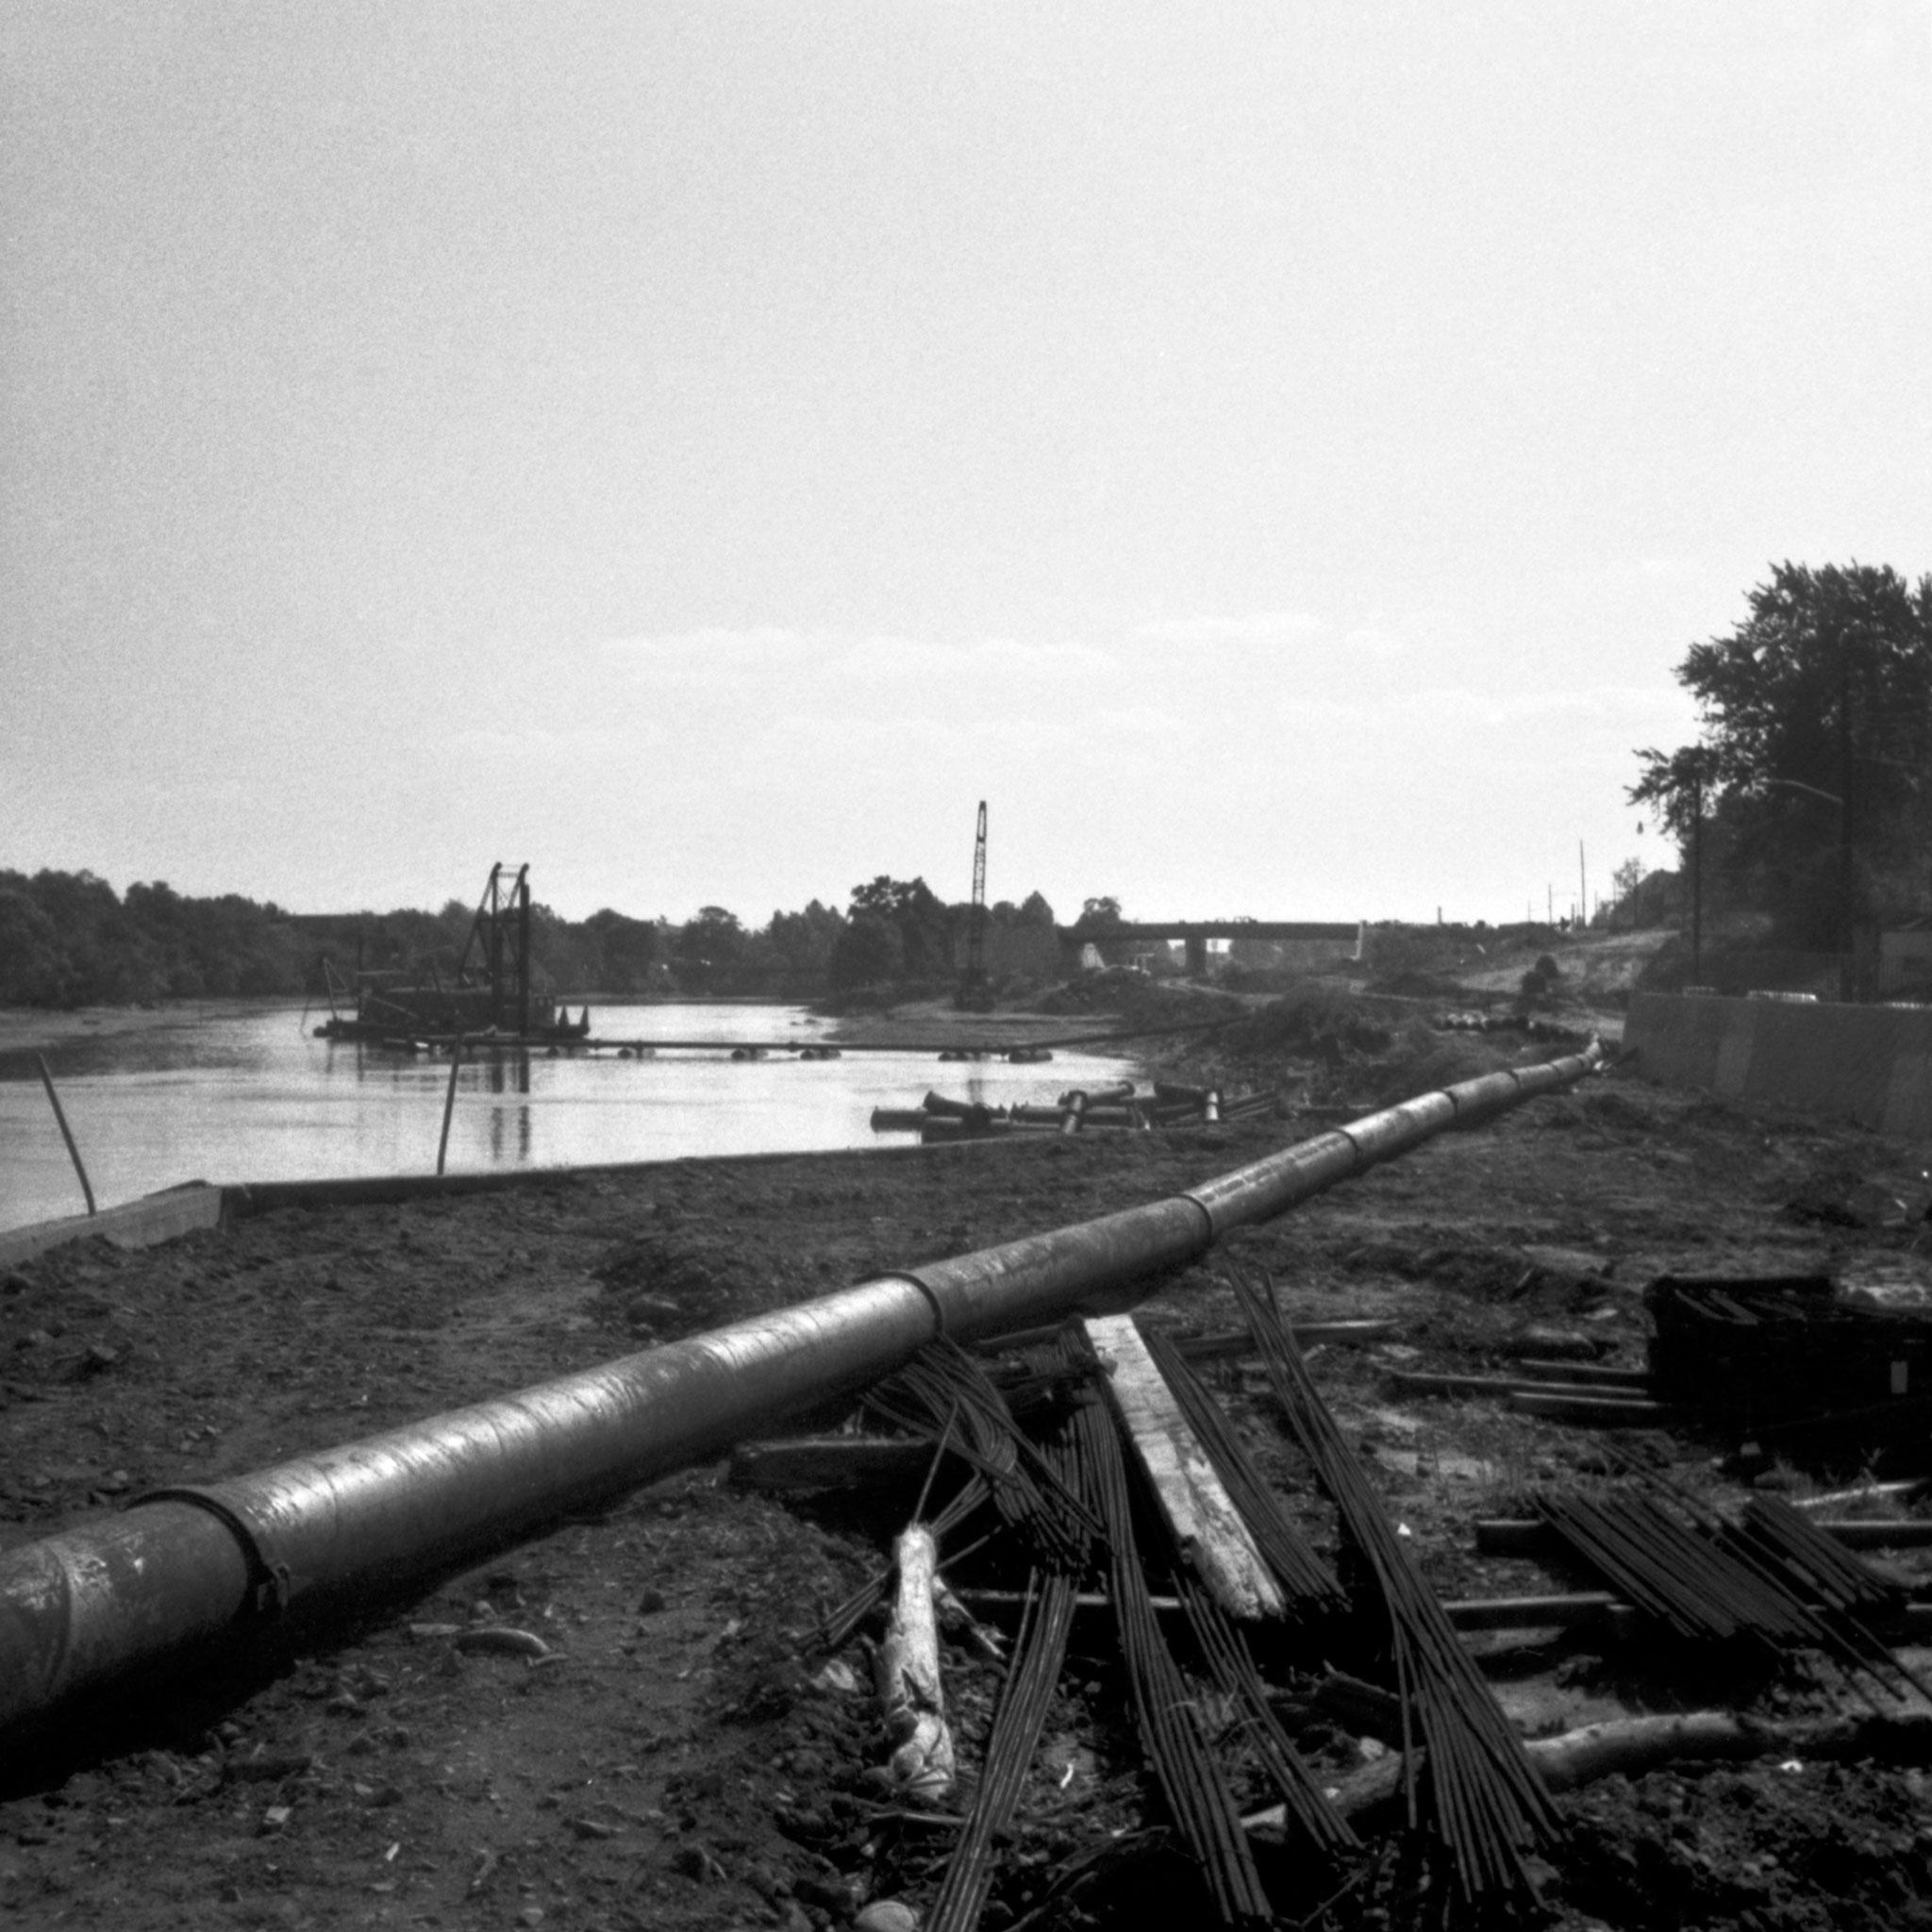 black and white image of a large metal pipe next to a body of water and landscape in the background